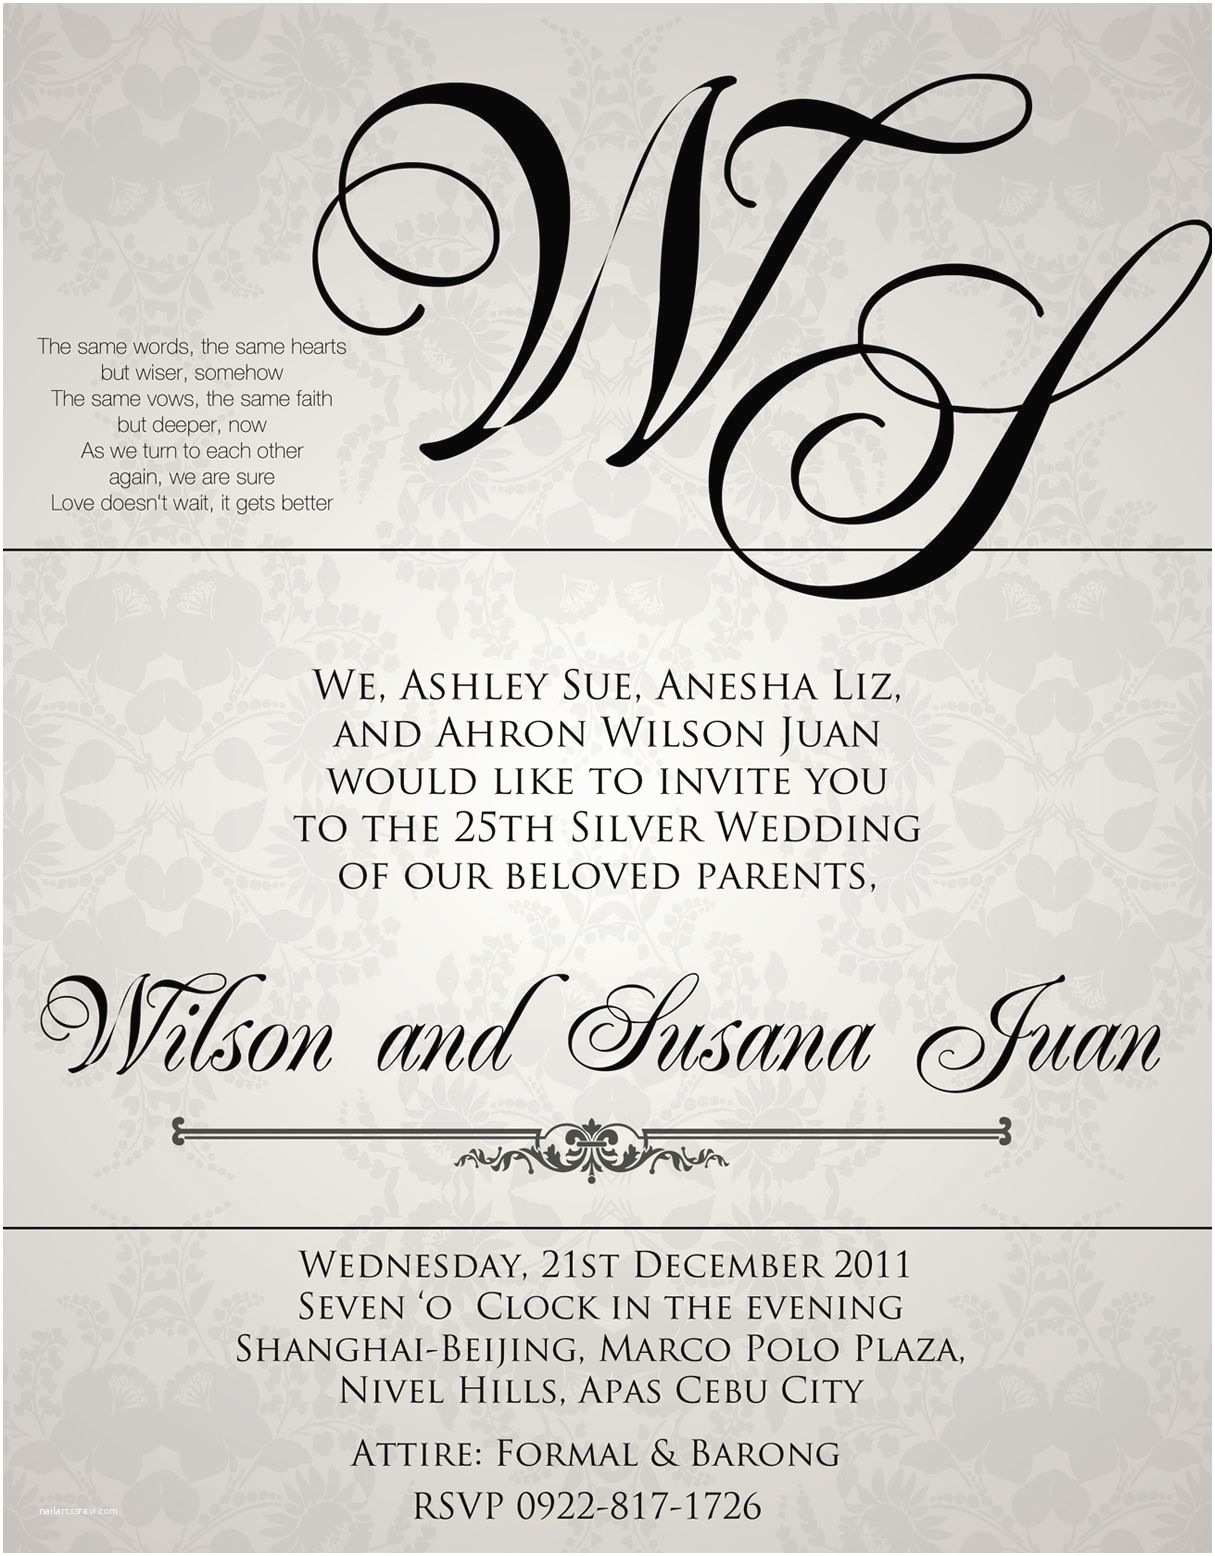 Samples Of Wedding Invitations Sample Wedding Invitation Wording In the Philippines